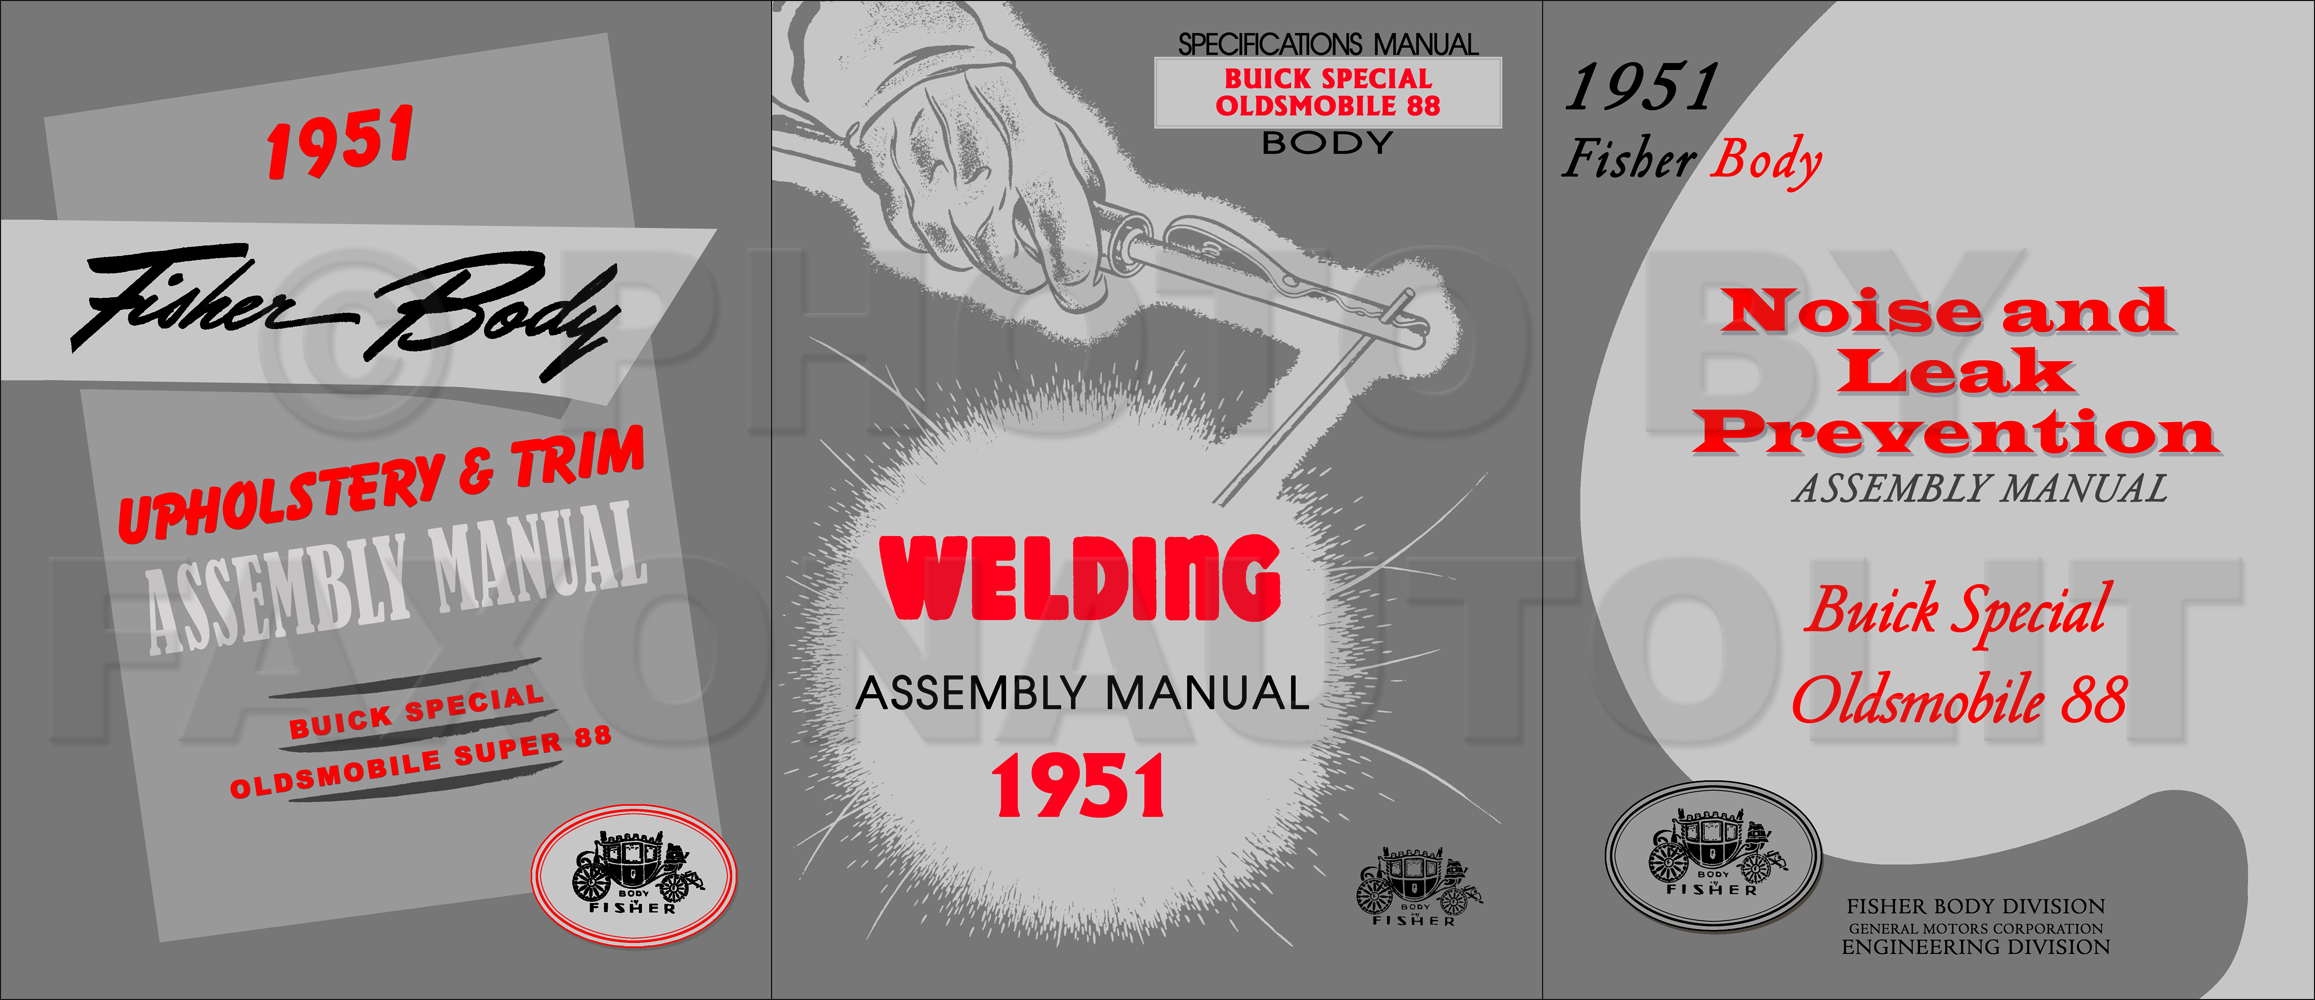 1951 Fisher Body Assembly Manual Set - Buick Special/Oldsmobile Super 88